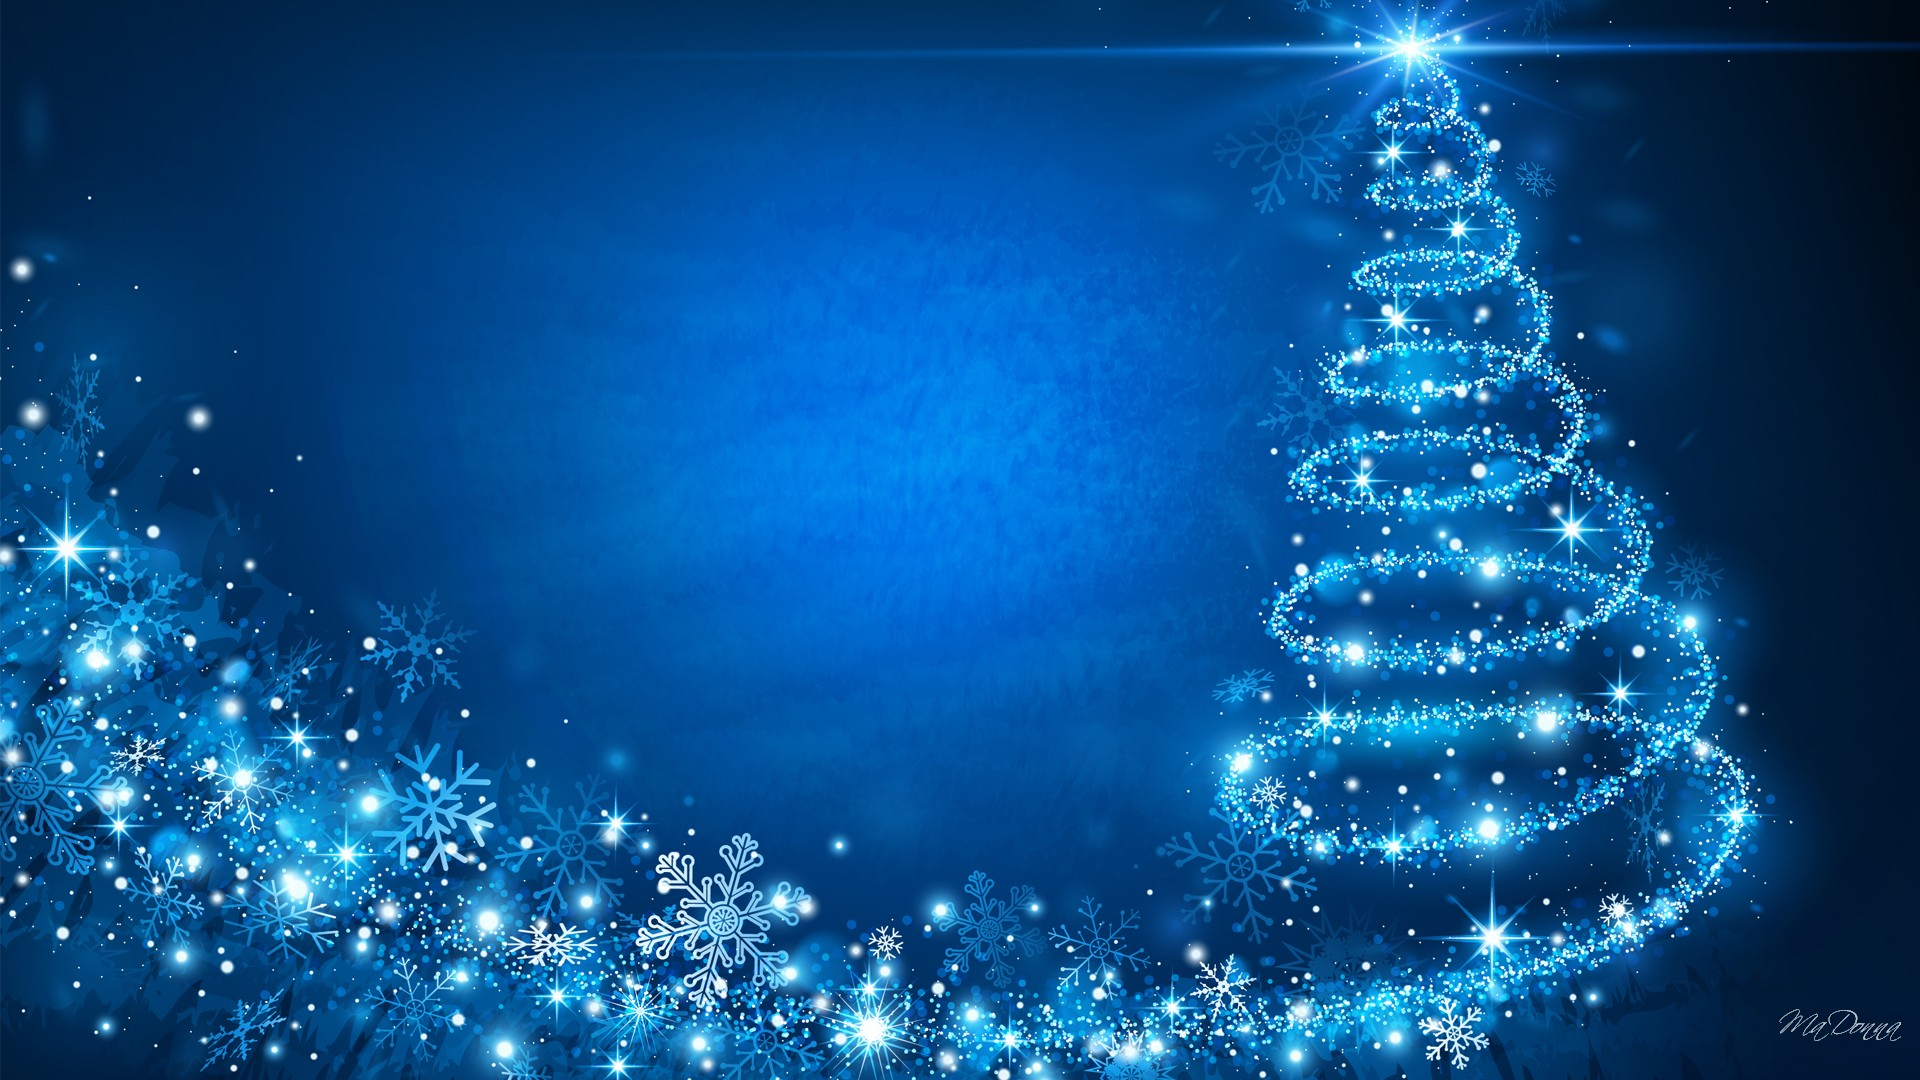 blue hd christmas background